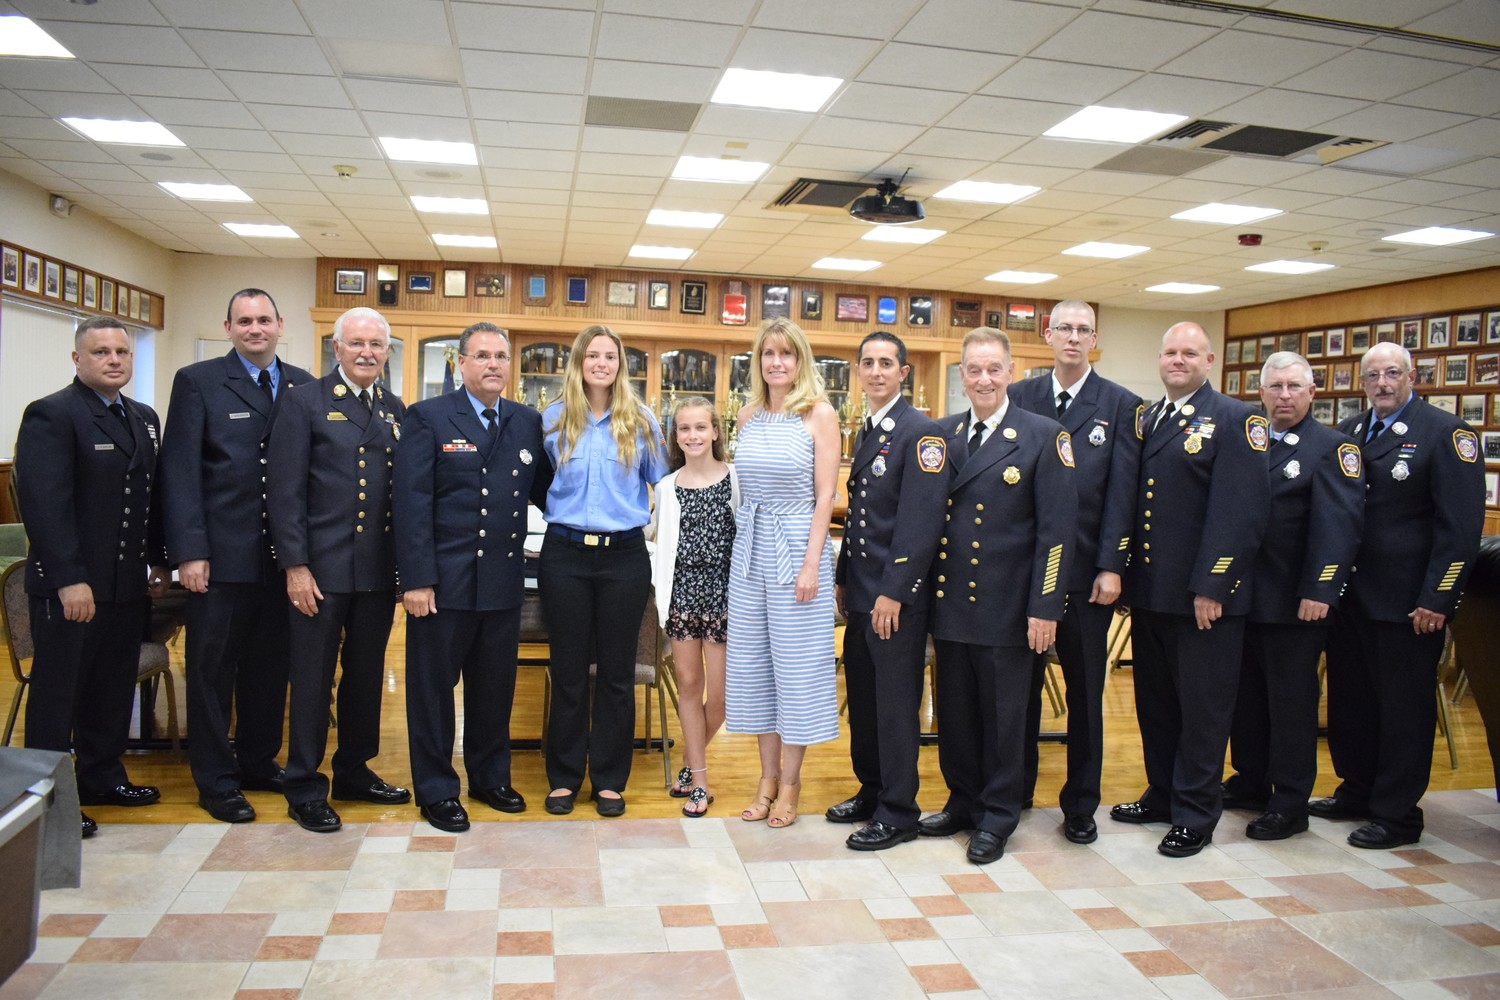 Fire volunteers and veterans celebrated at Daniela Pasquarello's scholarship ceremony, along with the Schilt family.